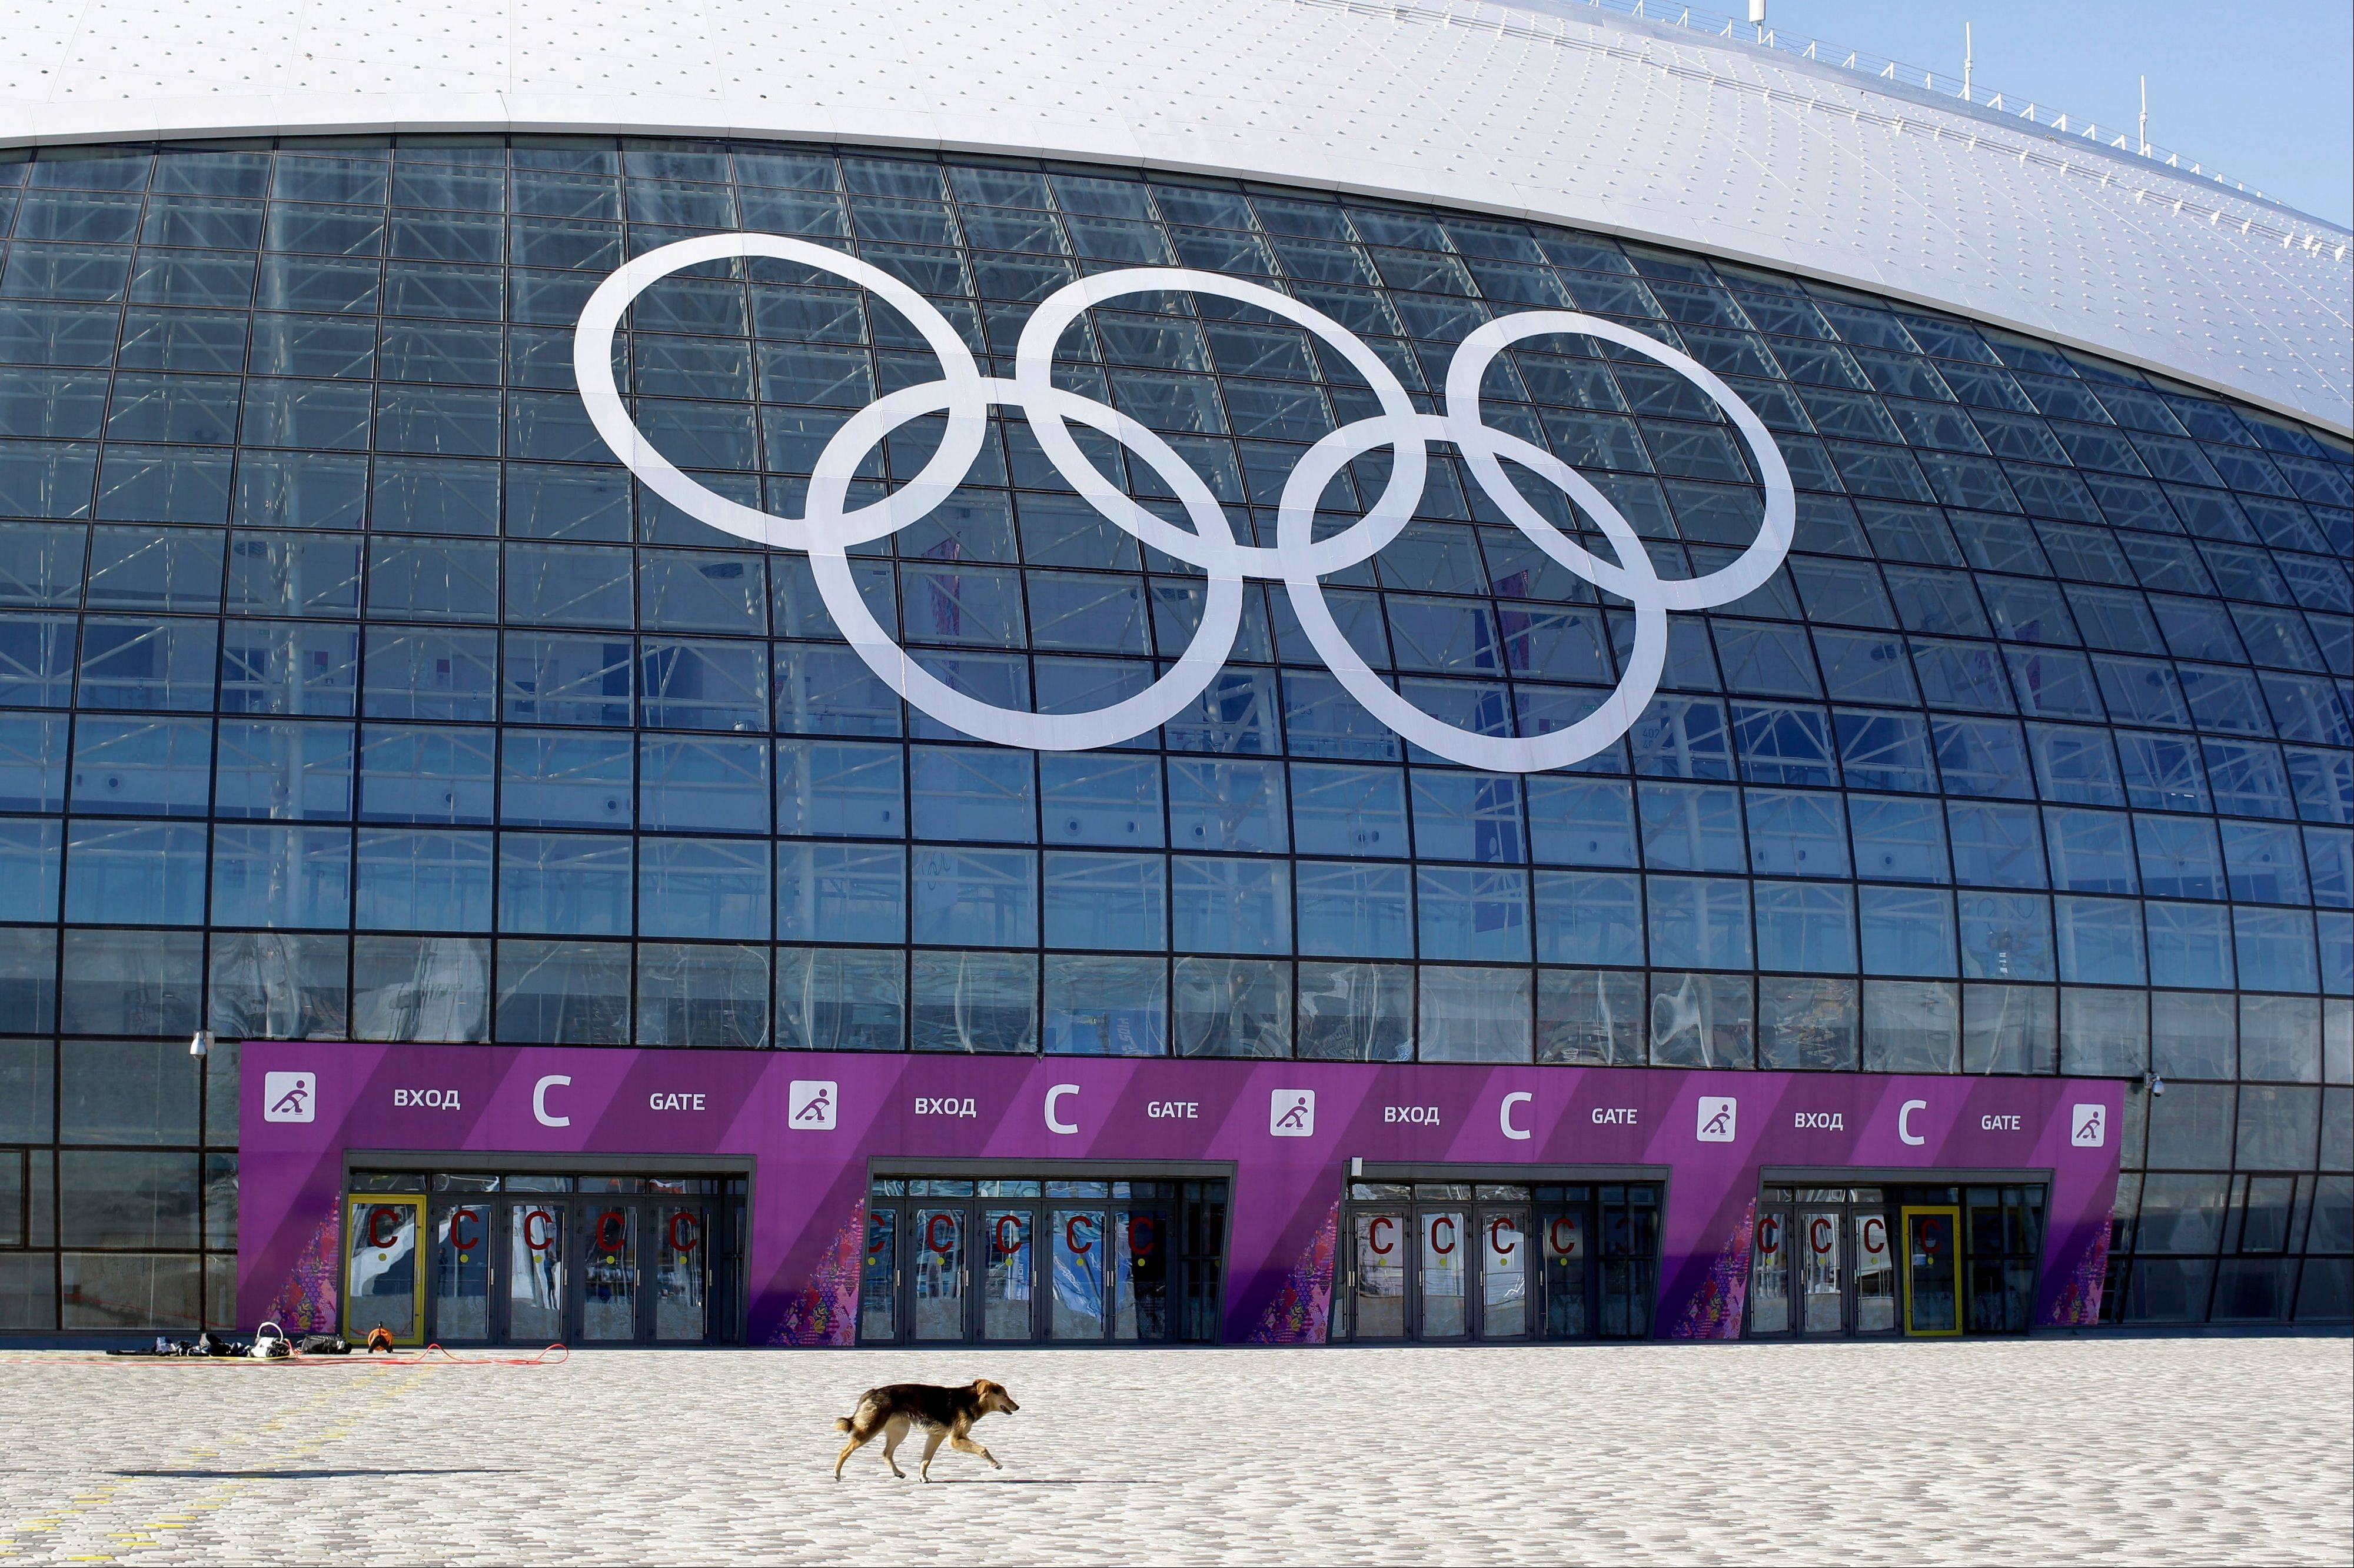 A stray dog walks outside the Ice Dome venue as preparations take place for the 2014 Winter Olympics Monday, Feb. 3, 2014, in Sochi, Russia. A pest control company which has been killing stray dogs in Sochi for years told The Associated Press on Monday that it has a contract to exterminate more of the animals throughout the Olympics.